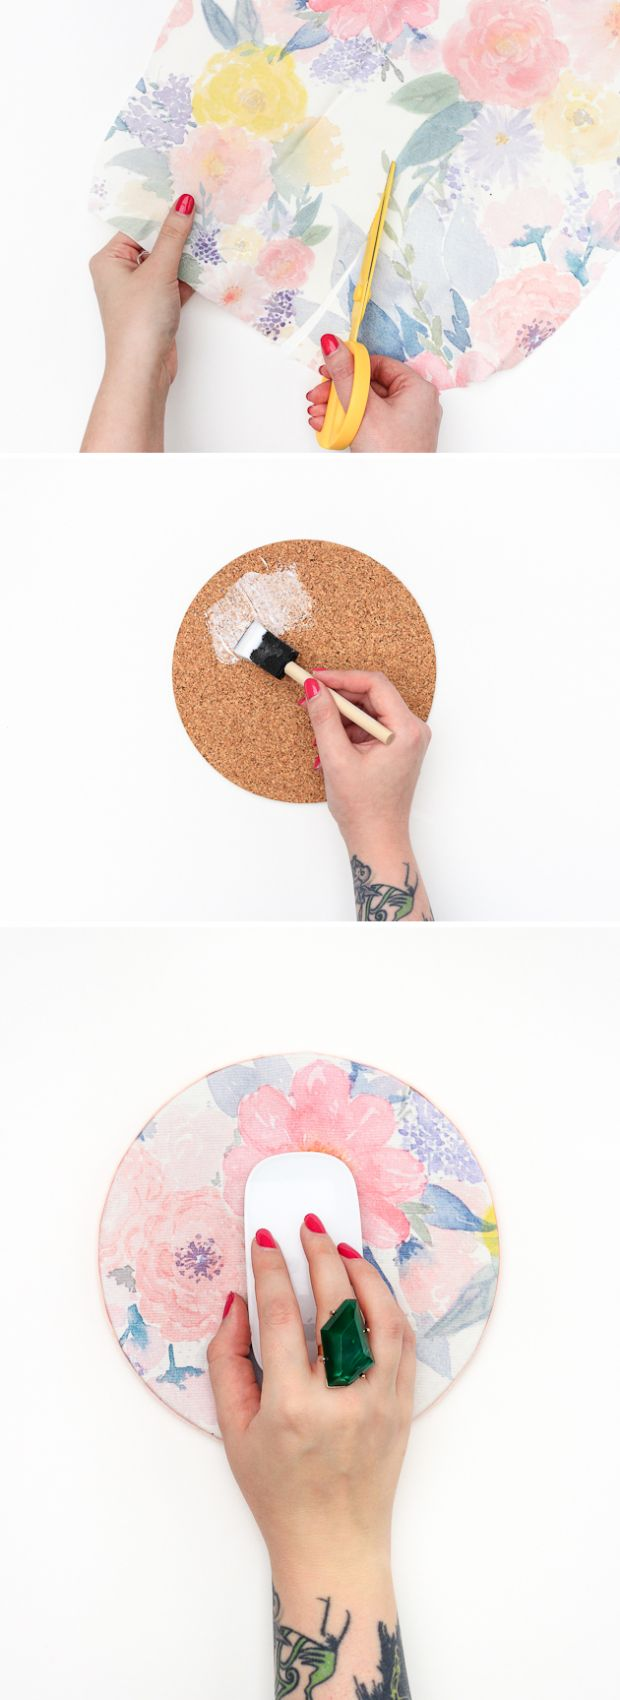 DIY Mouse Pad | 14 Cheap But Cute Dorm Room DIYs | http://www.hercampus.com/diy/decorating/14-cheap-cute-dorm-room-diys